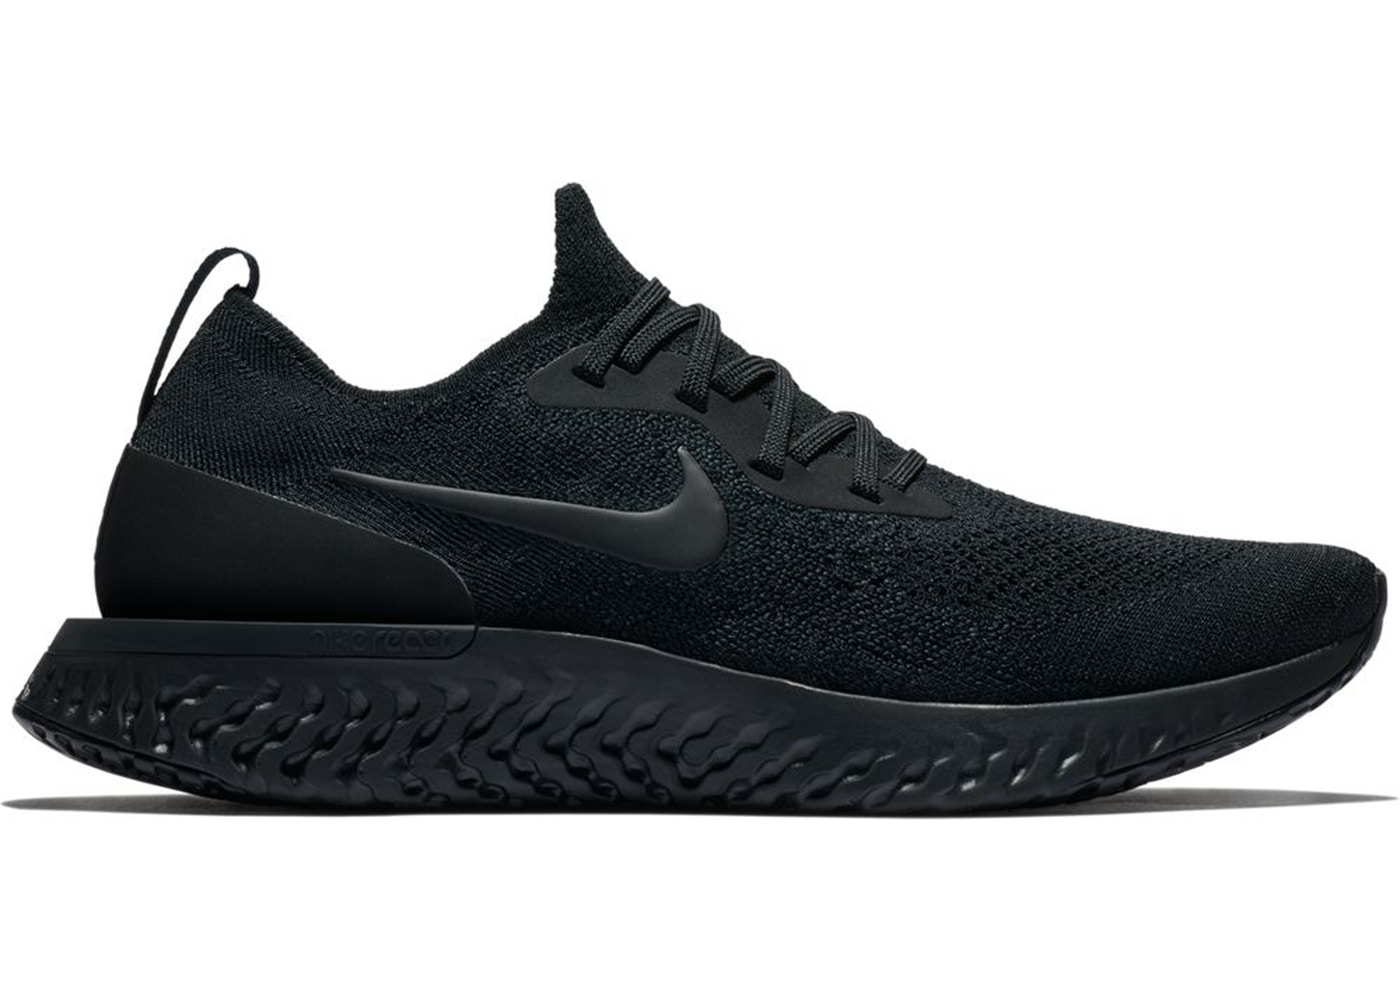 7cafdc805 On Sale: Nike Epic React Flyknit